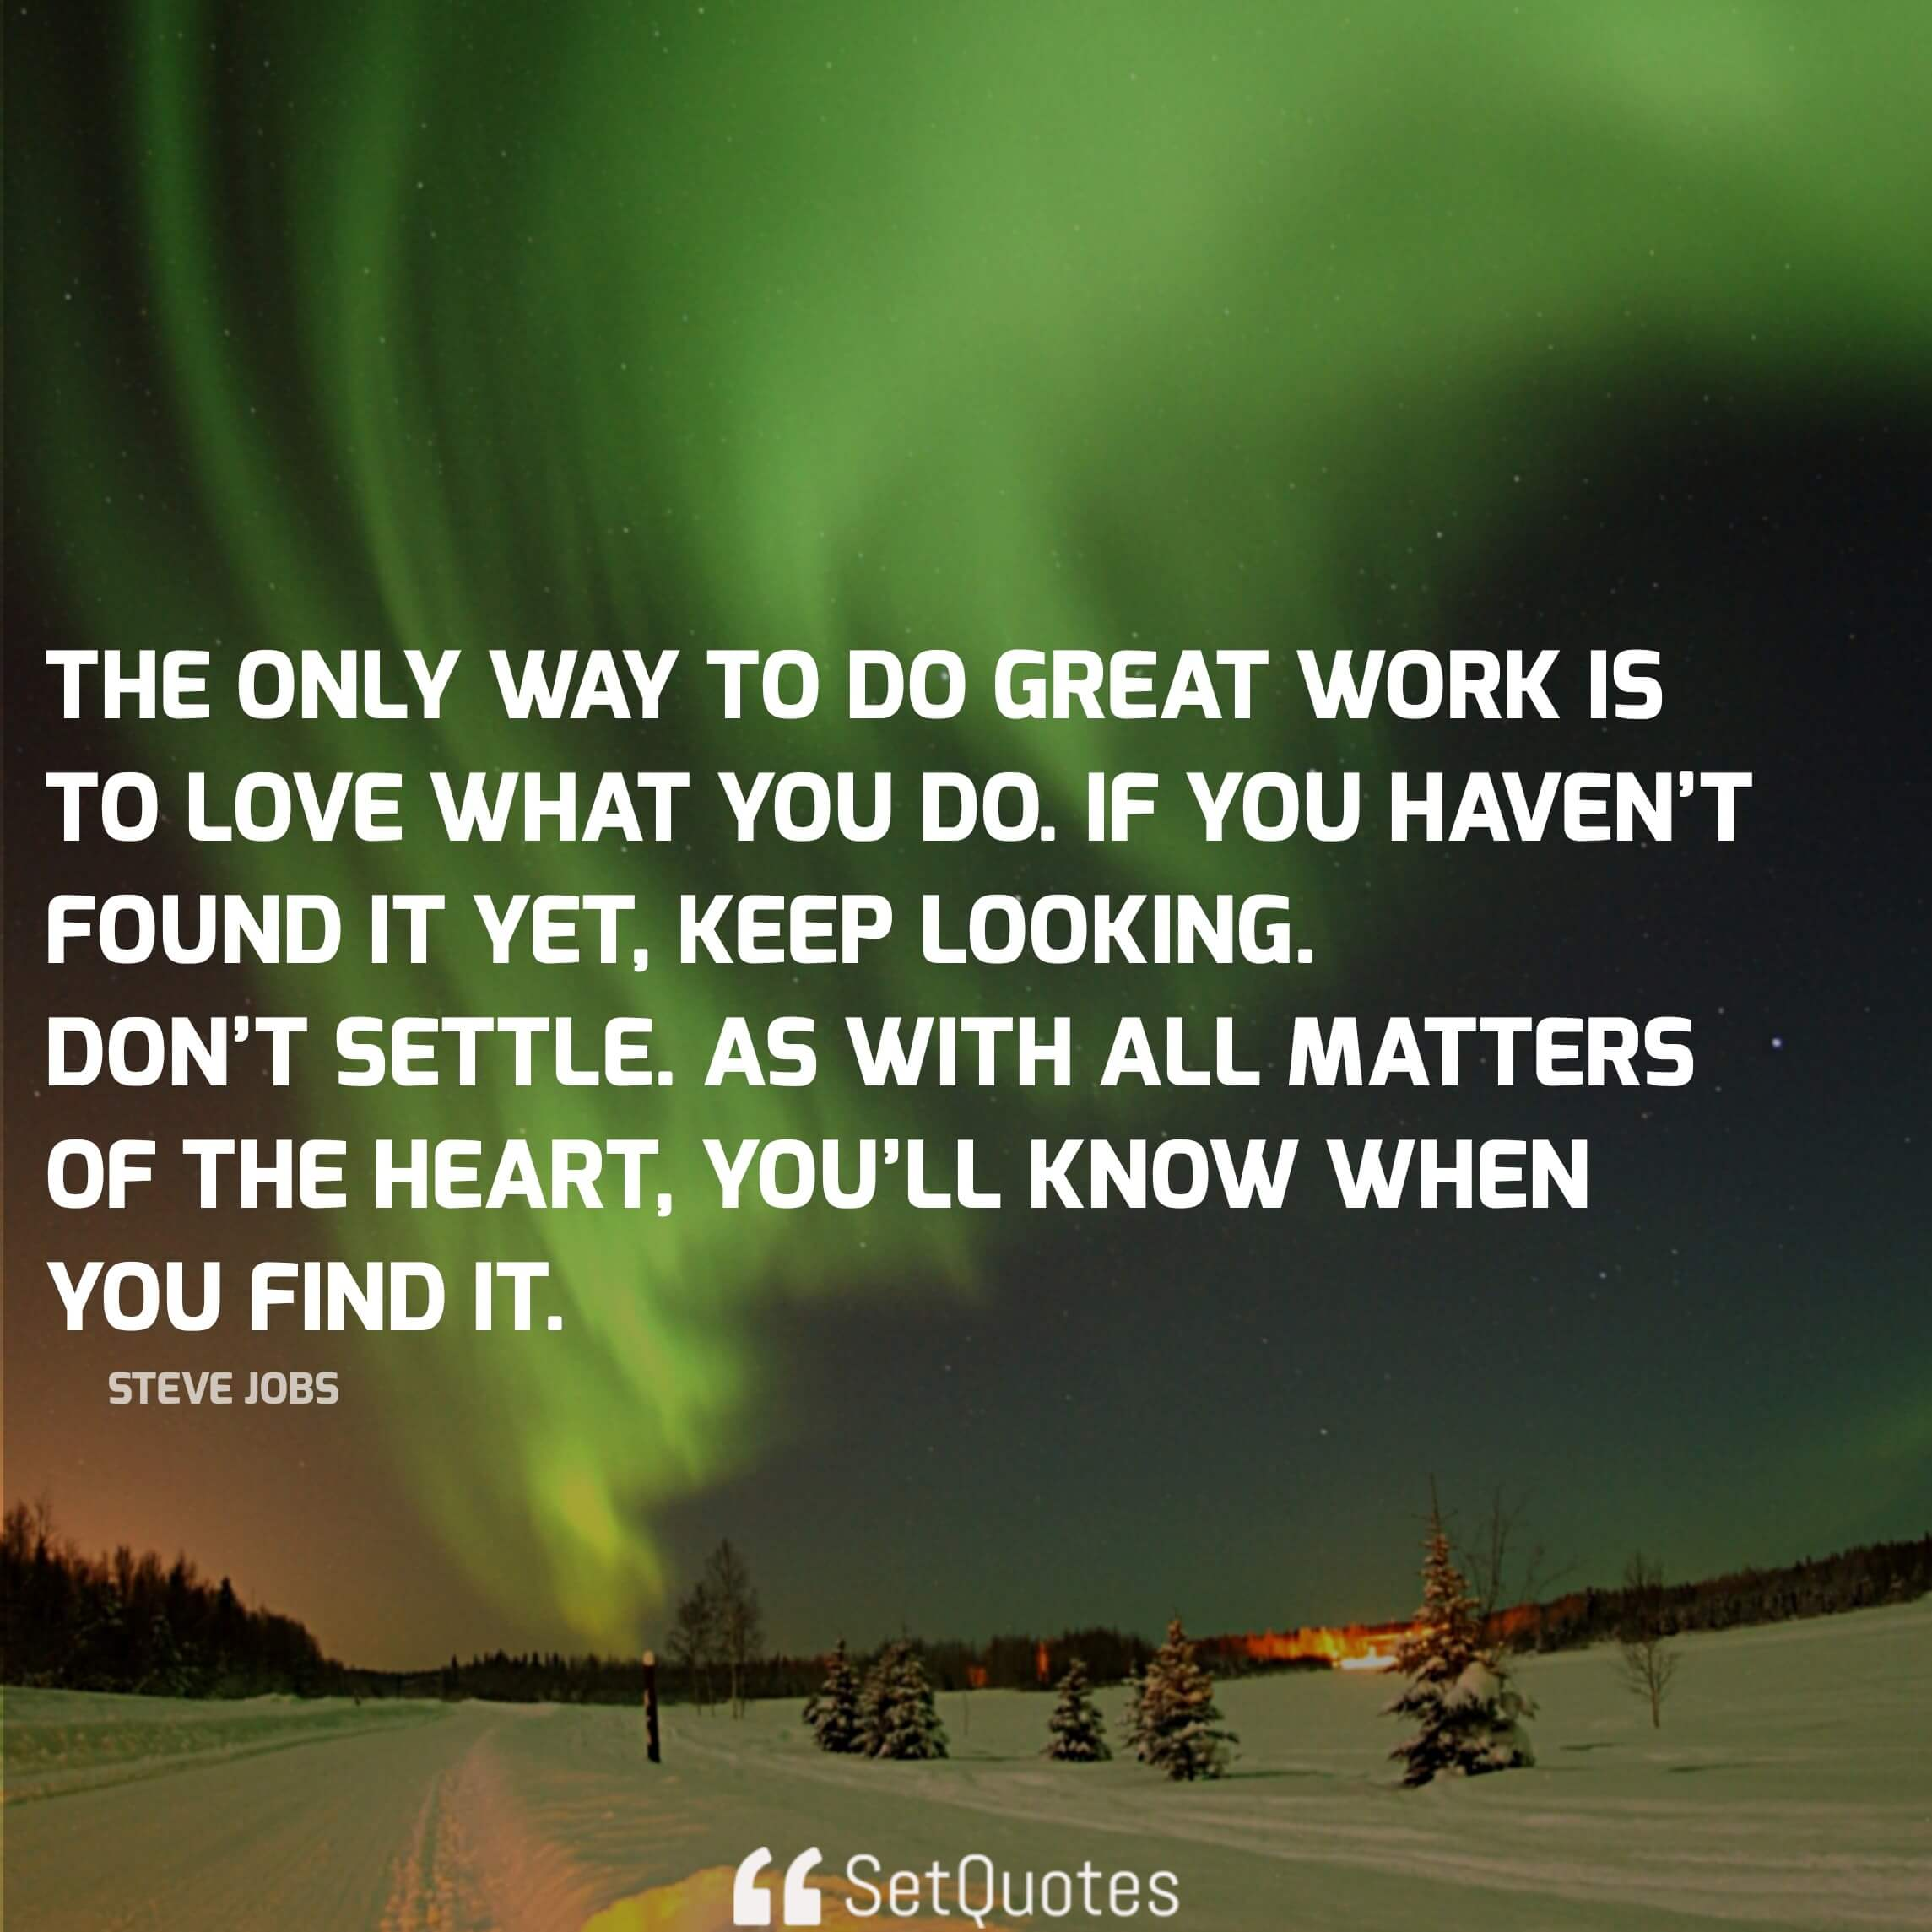 And the only way to do great work is to love what you do. If you haven't found it yet, keep looking. Don't settle. As with all matters of the heart, you'll know when you find it. - steve jobs quotes